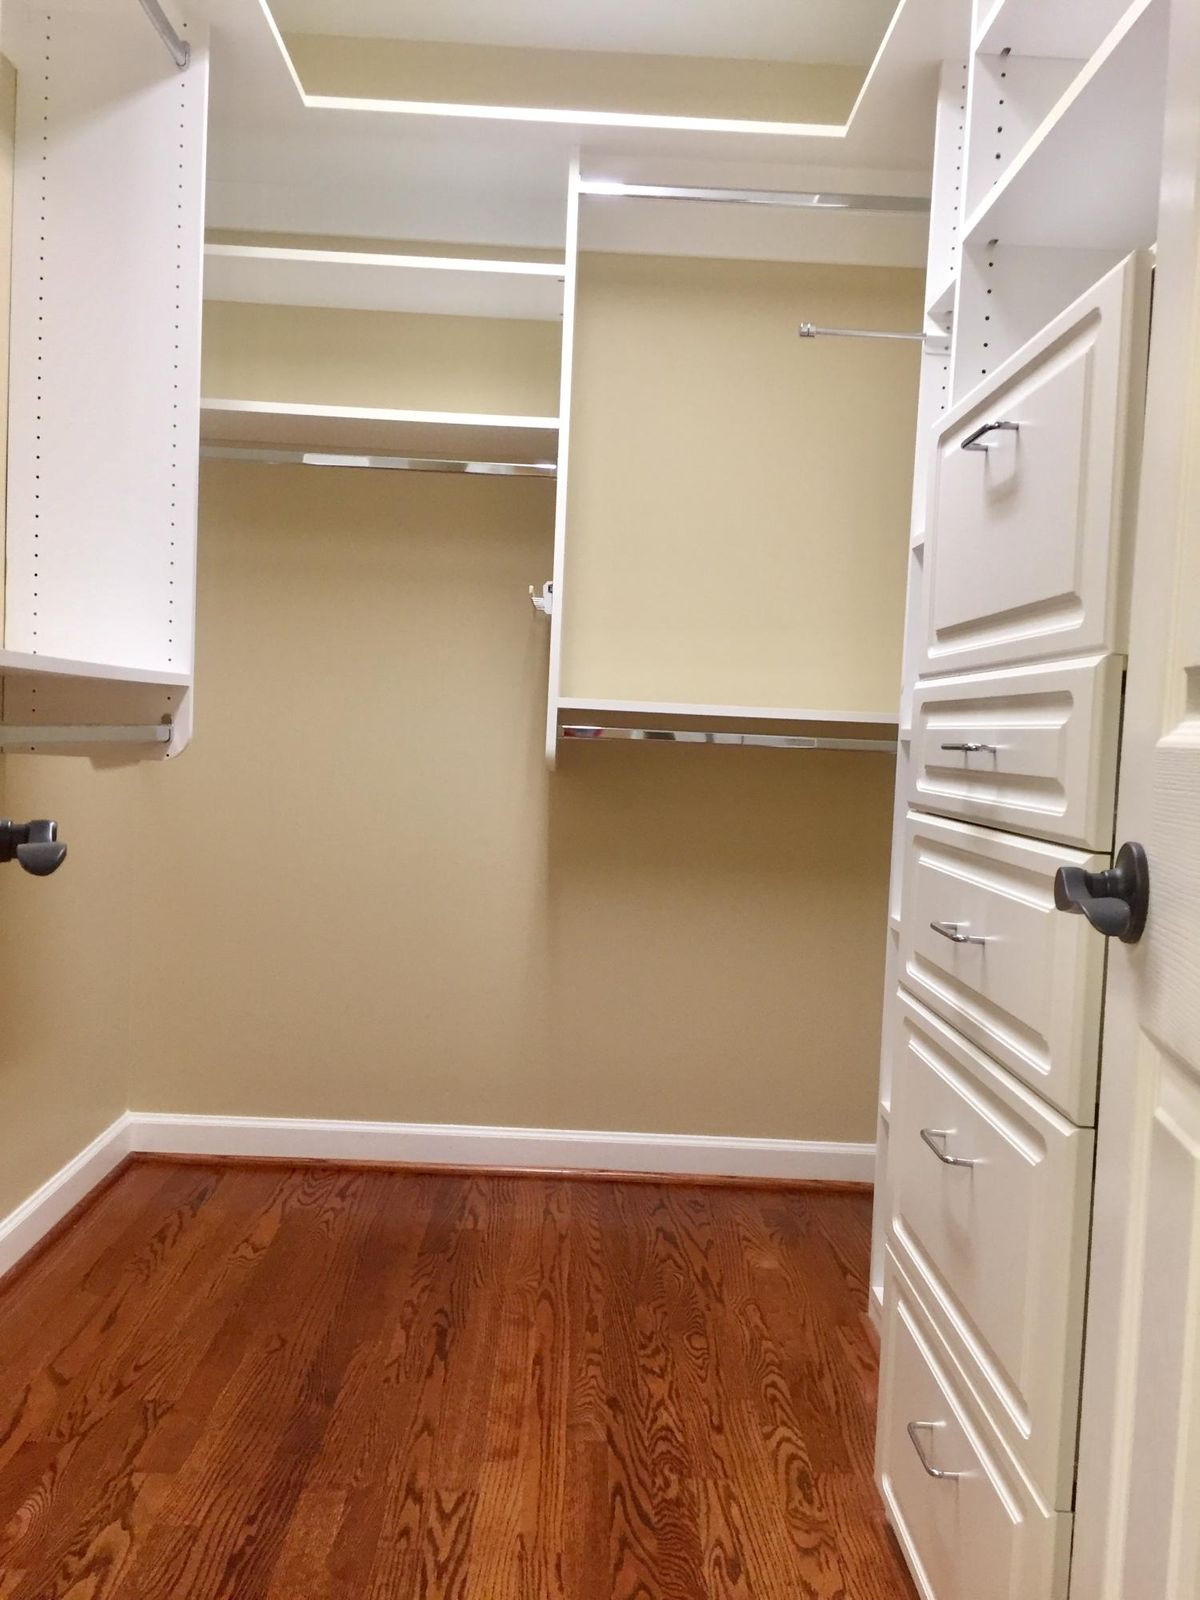 MASTER 2 CLOSETS/BUILT-IN CABINETS